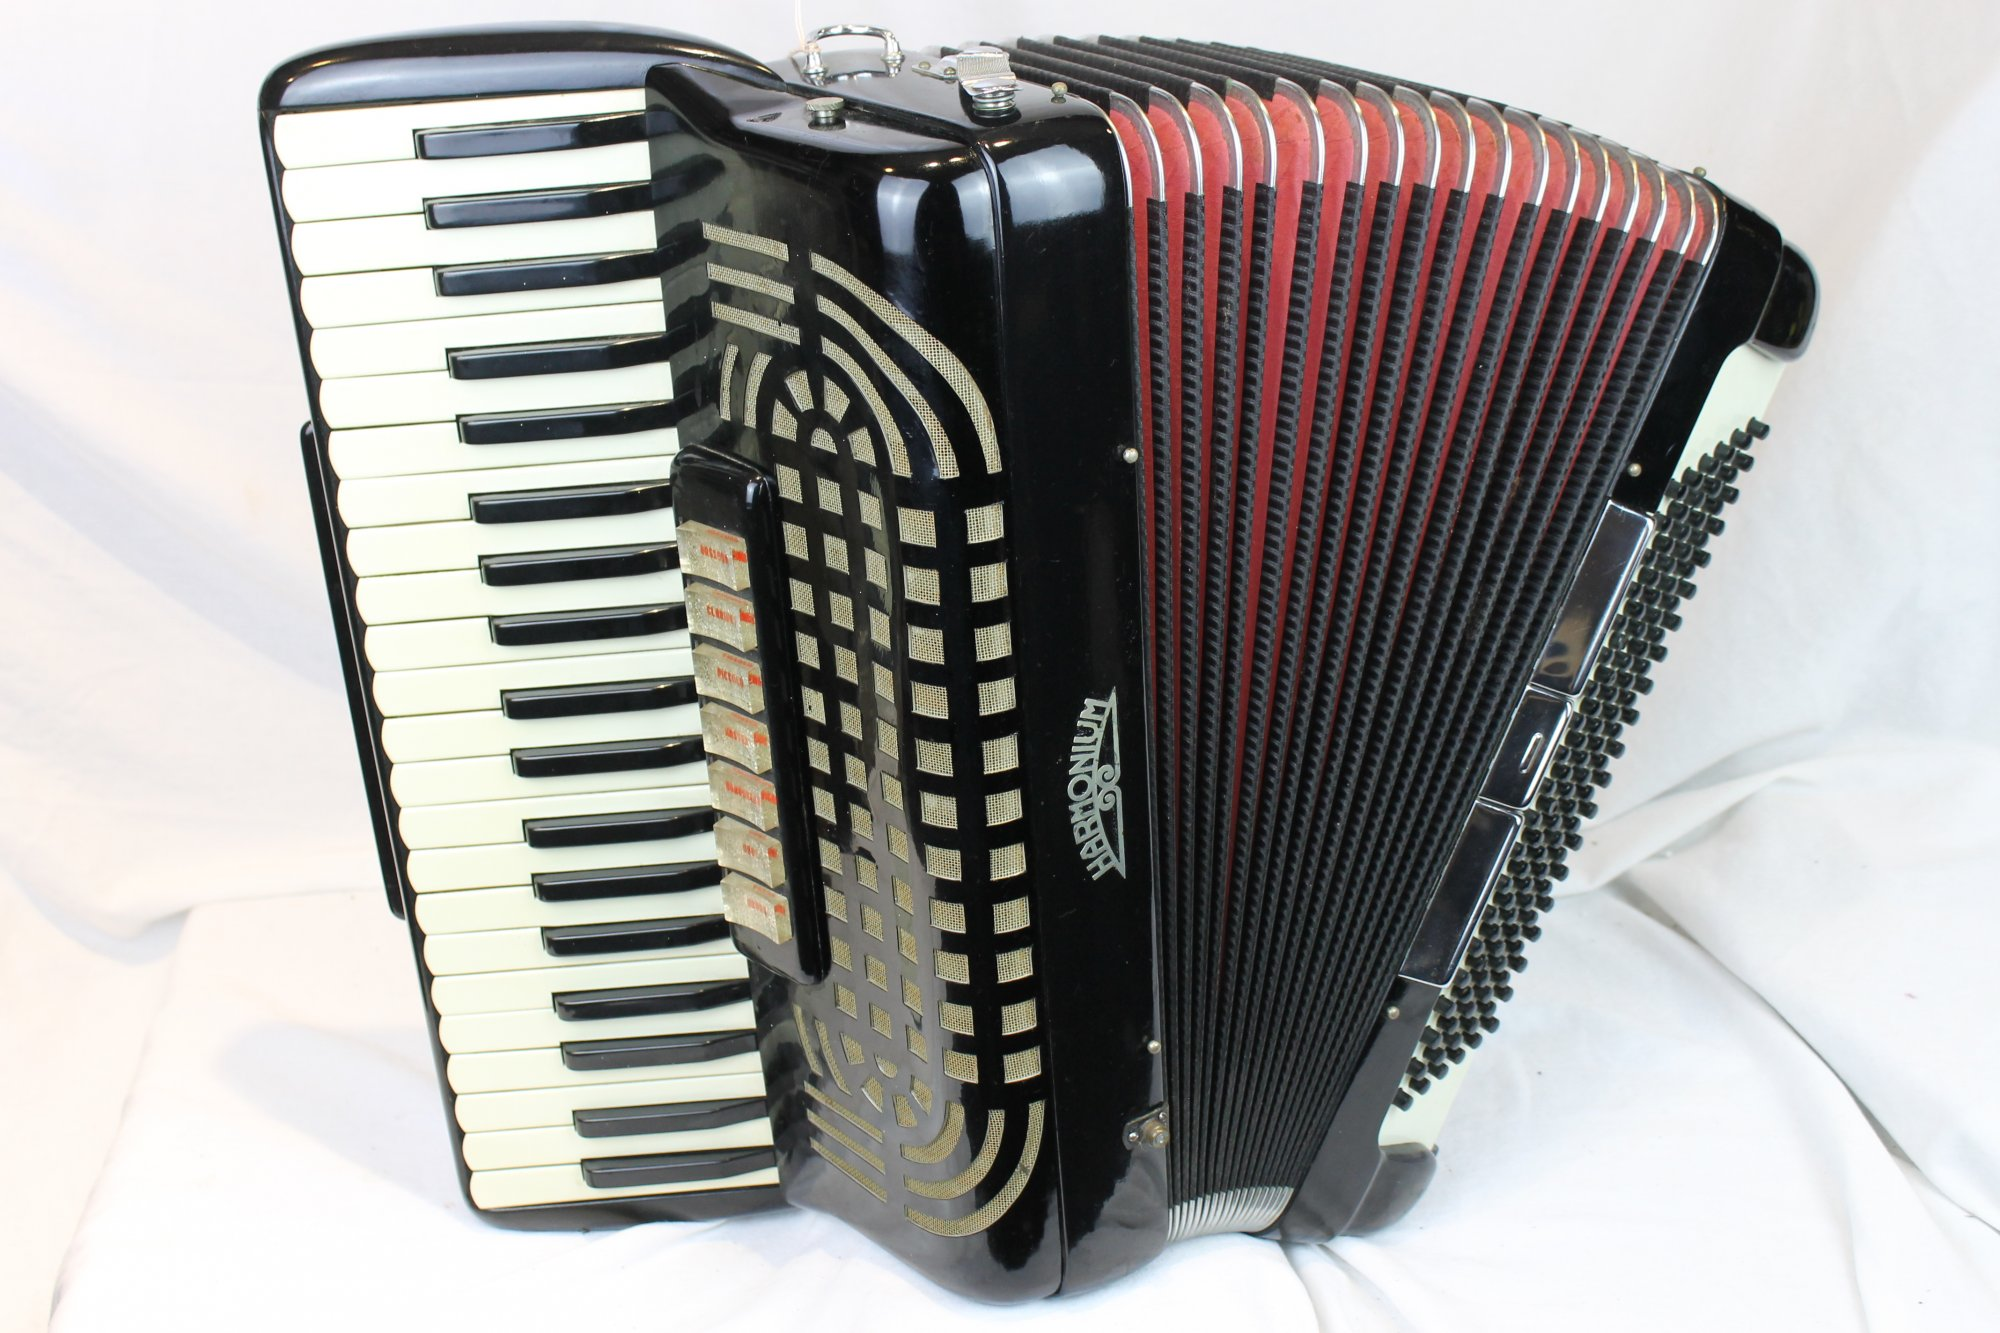 3557 - Black Harmonium Piano Accordion LMH 41 120